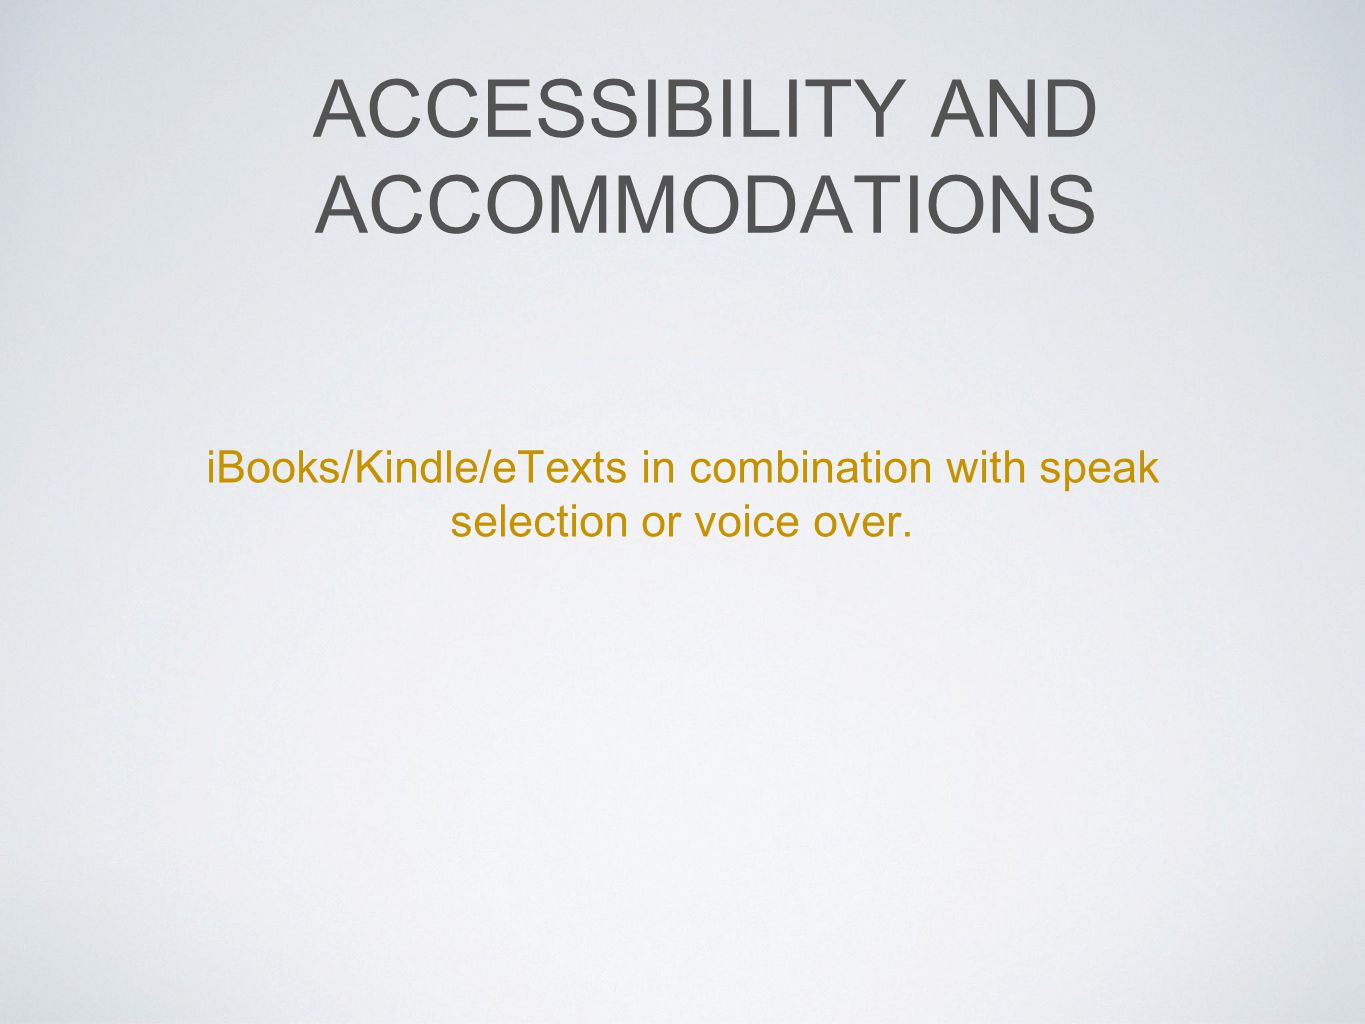 ACCESSIBILITY AND ACCOMMODATIONS iBooks/Kindle/eTexts in combination with speak selection or voice over.